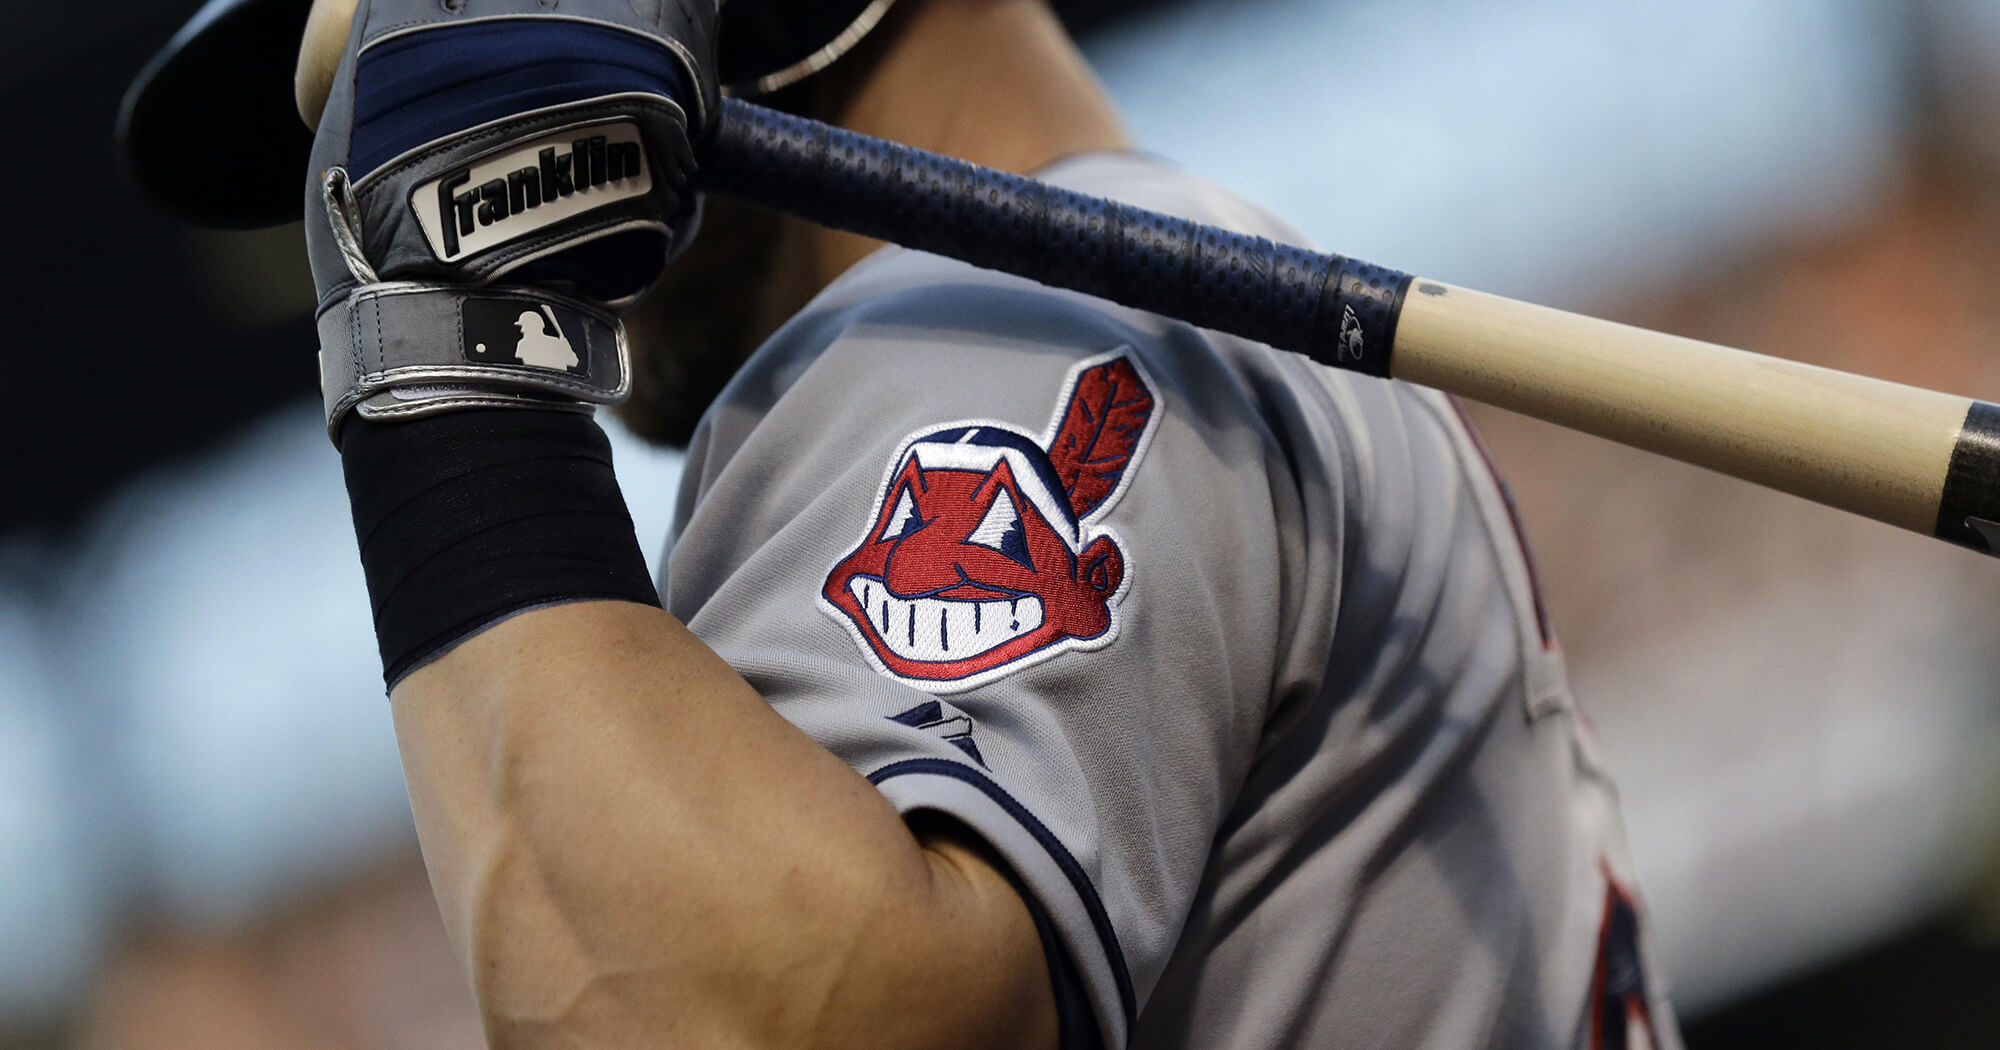 Cleveland Indians Rebrand - Ditching the Chief Wahoo Logo in 2019